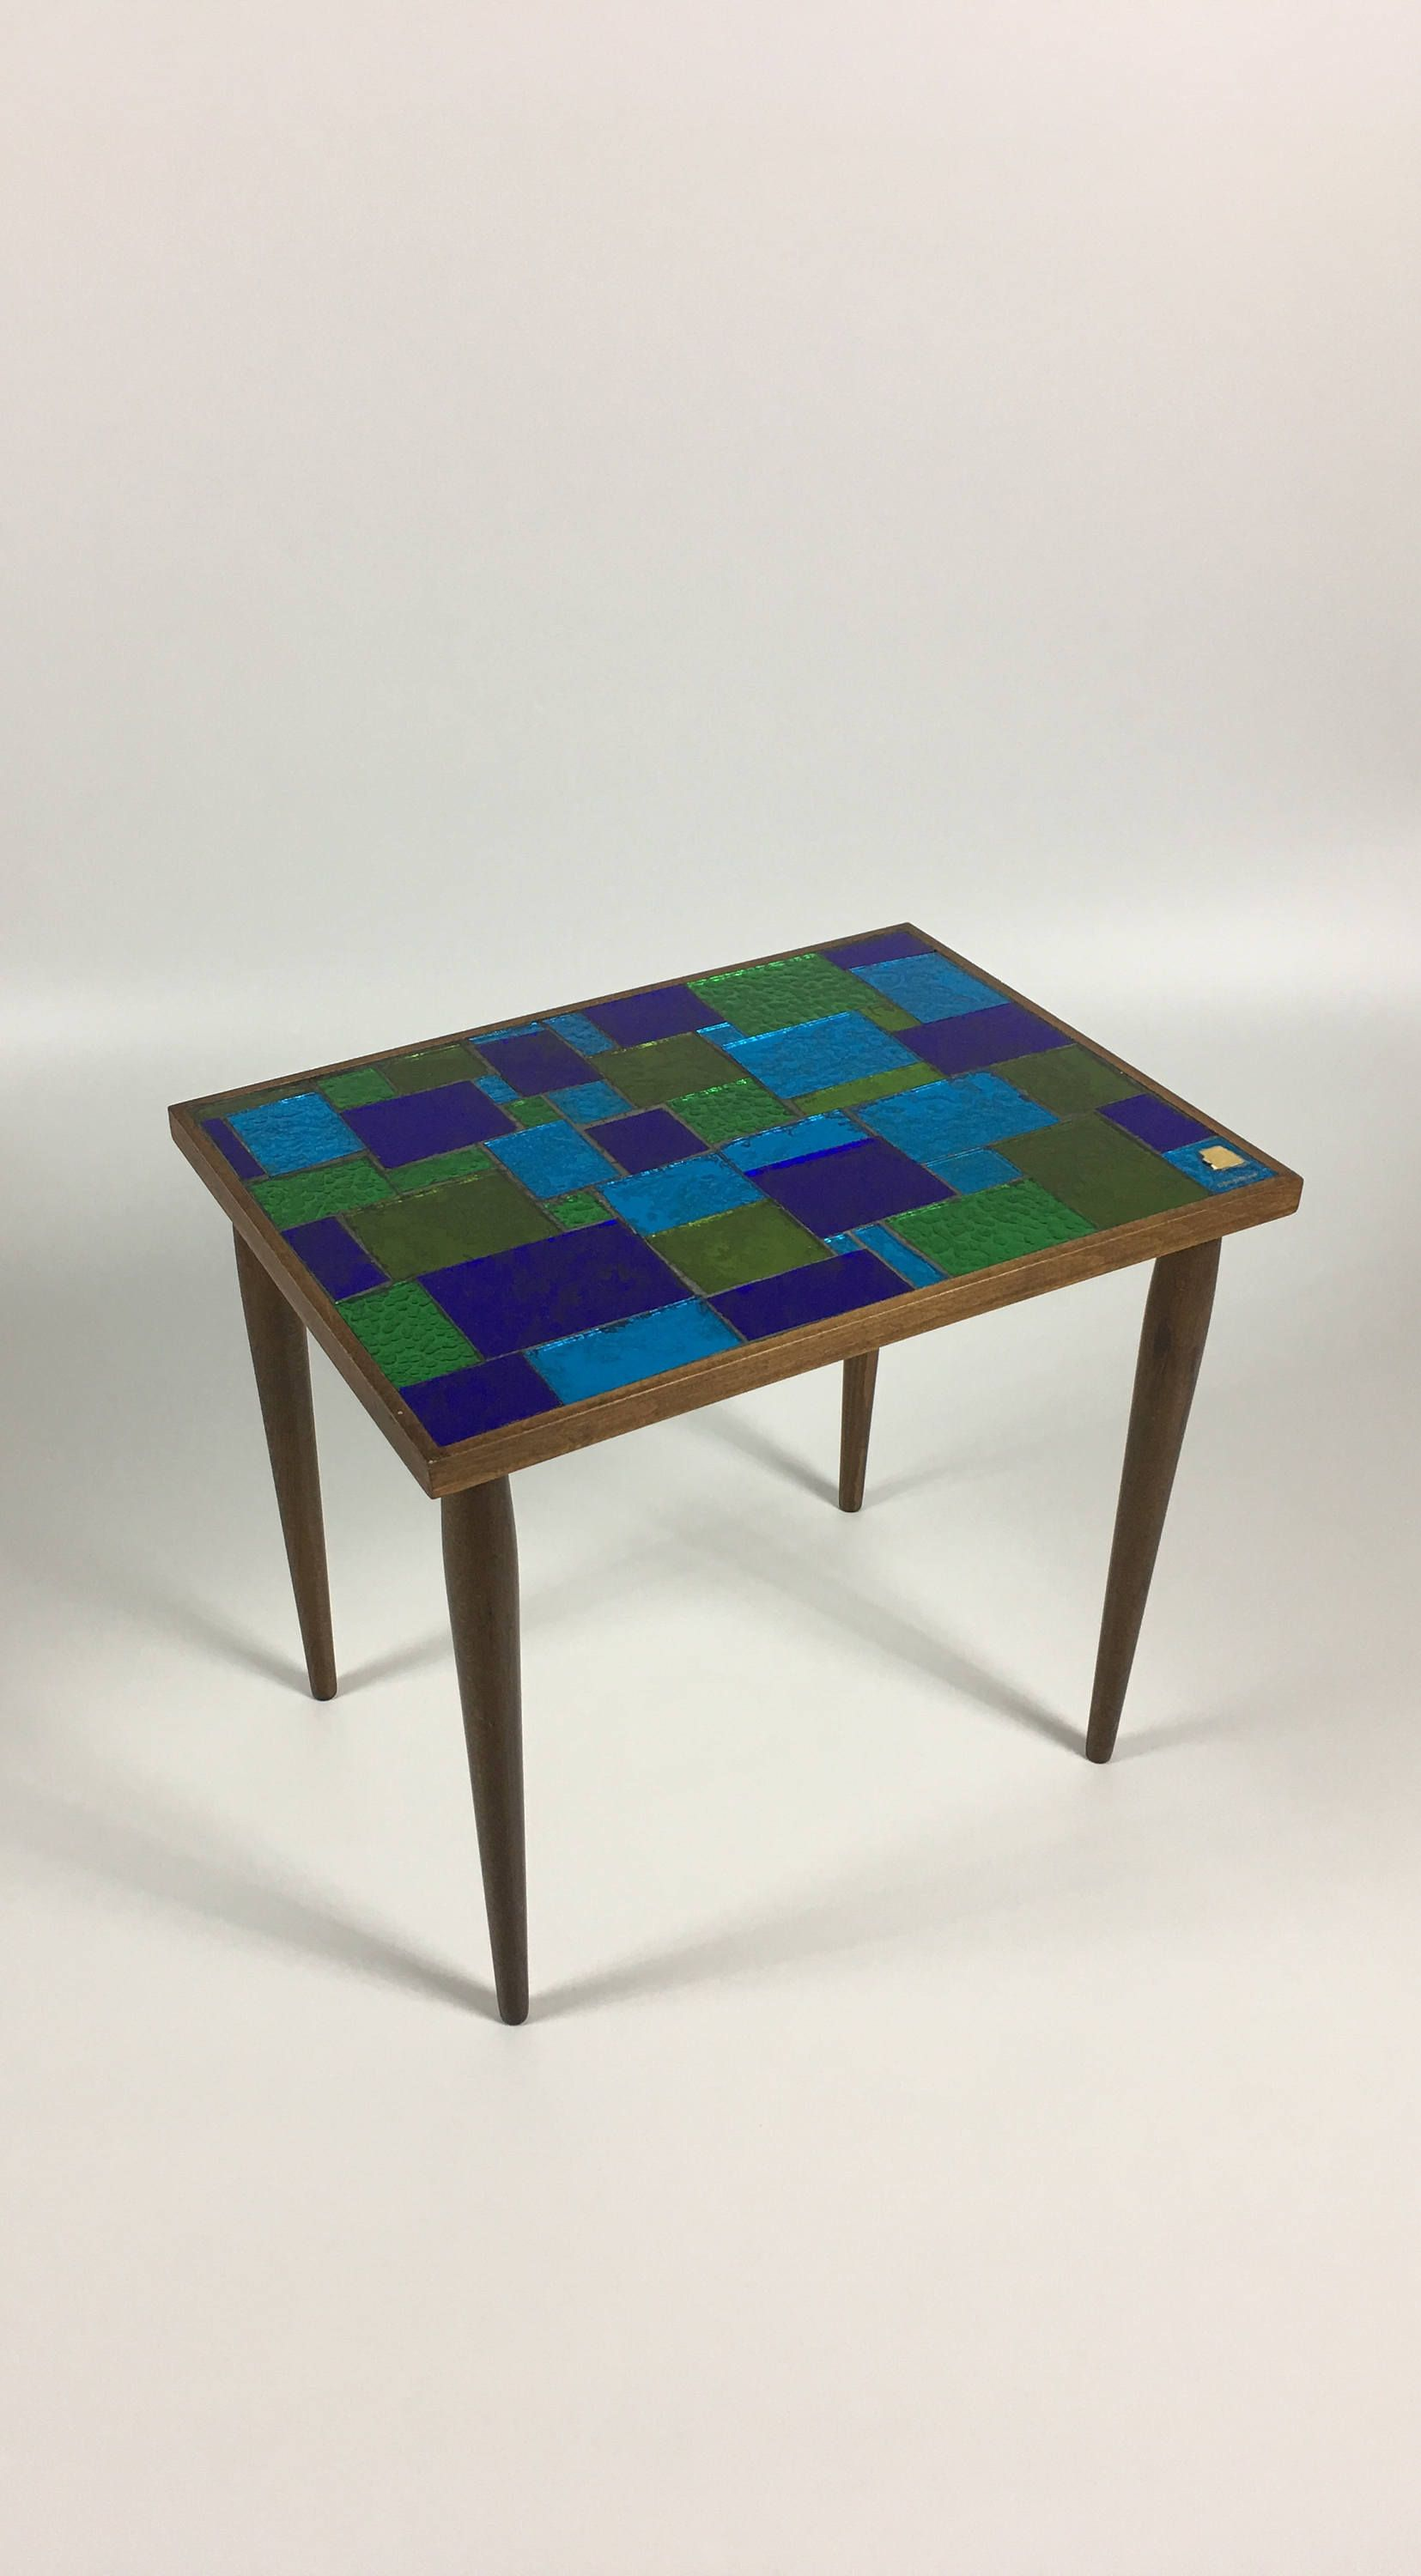 Vintage Georges Briard Mosaic Glass Tile Table Small Side Table